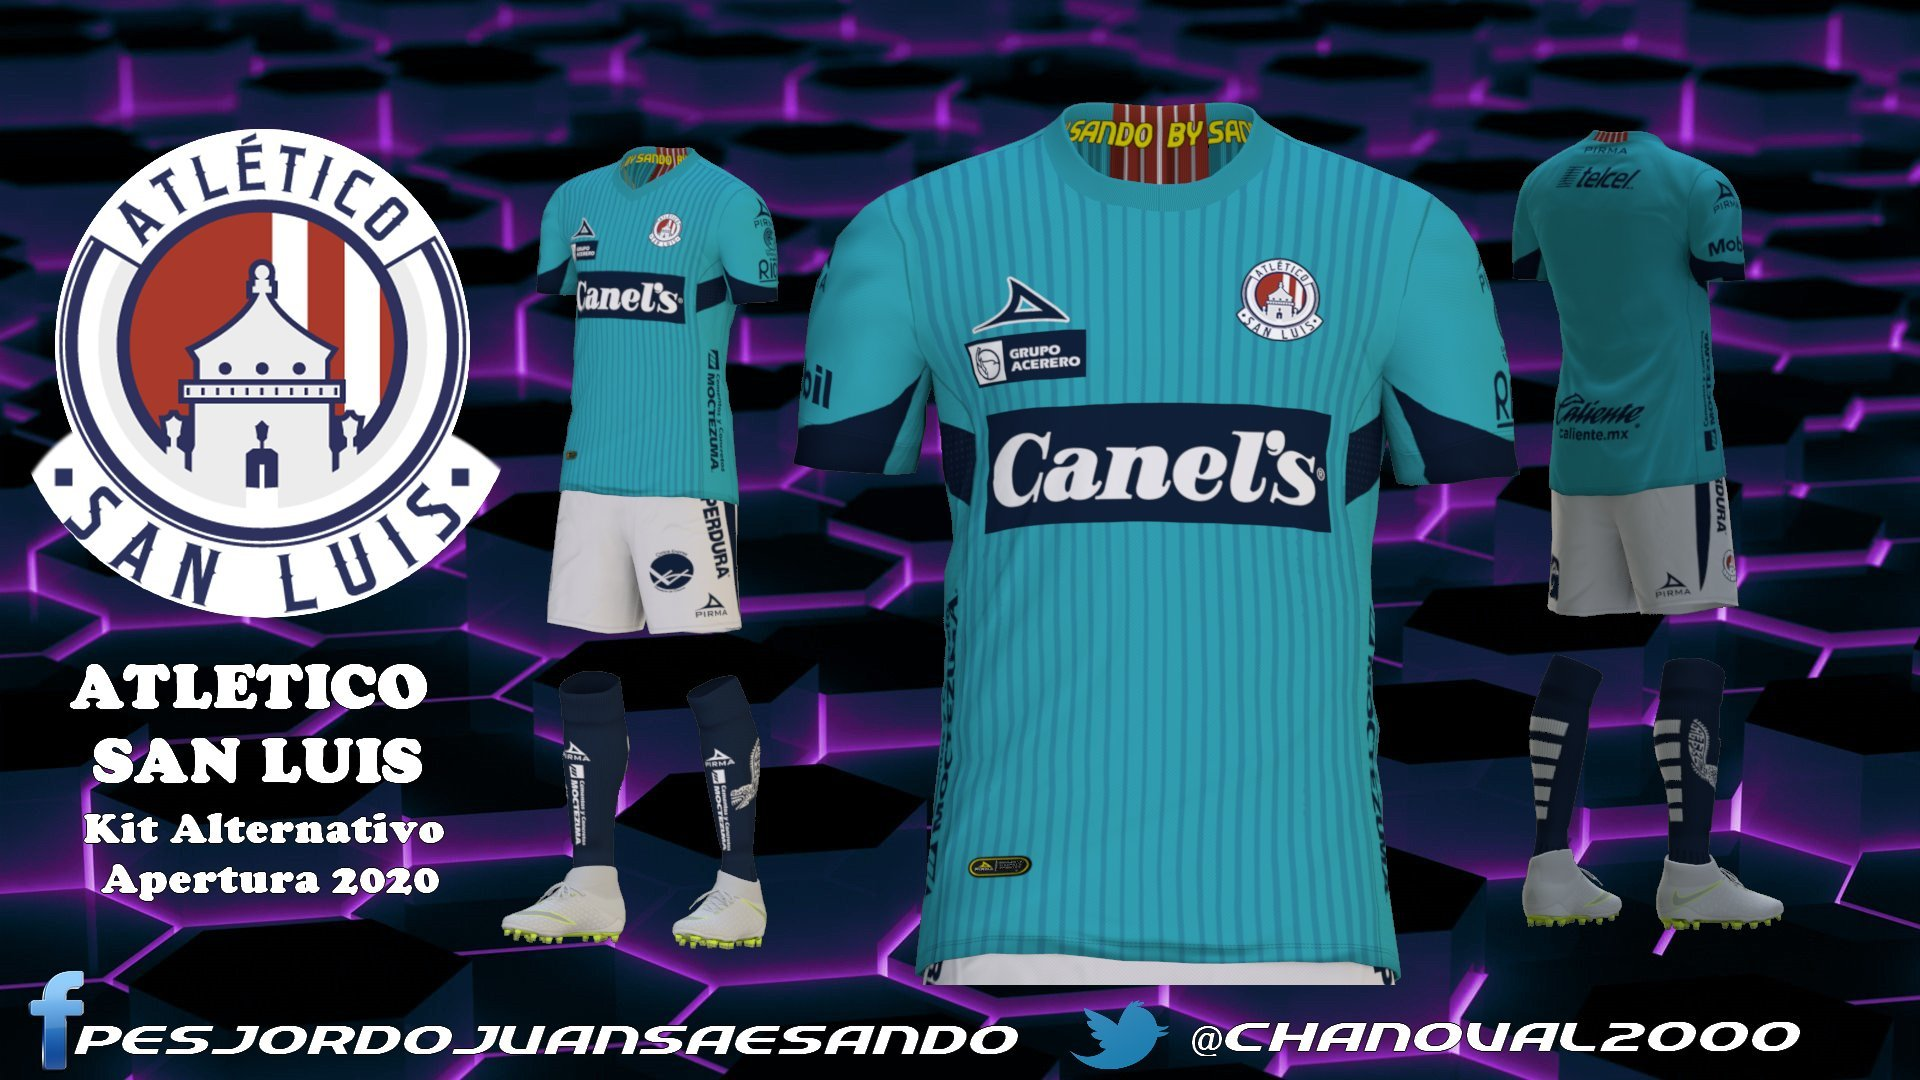 Kit alternativo Atlético San Luis by Sando